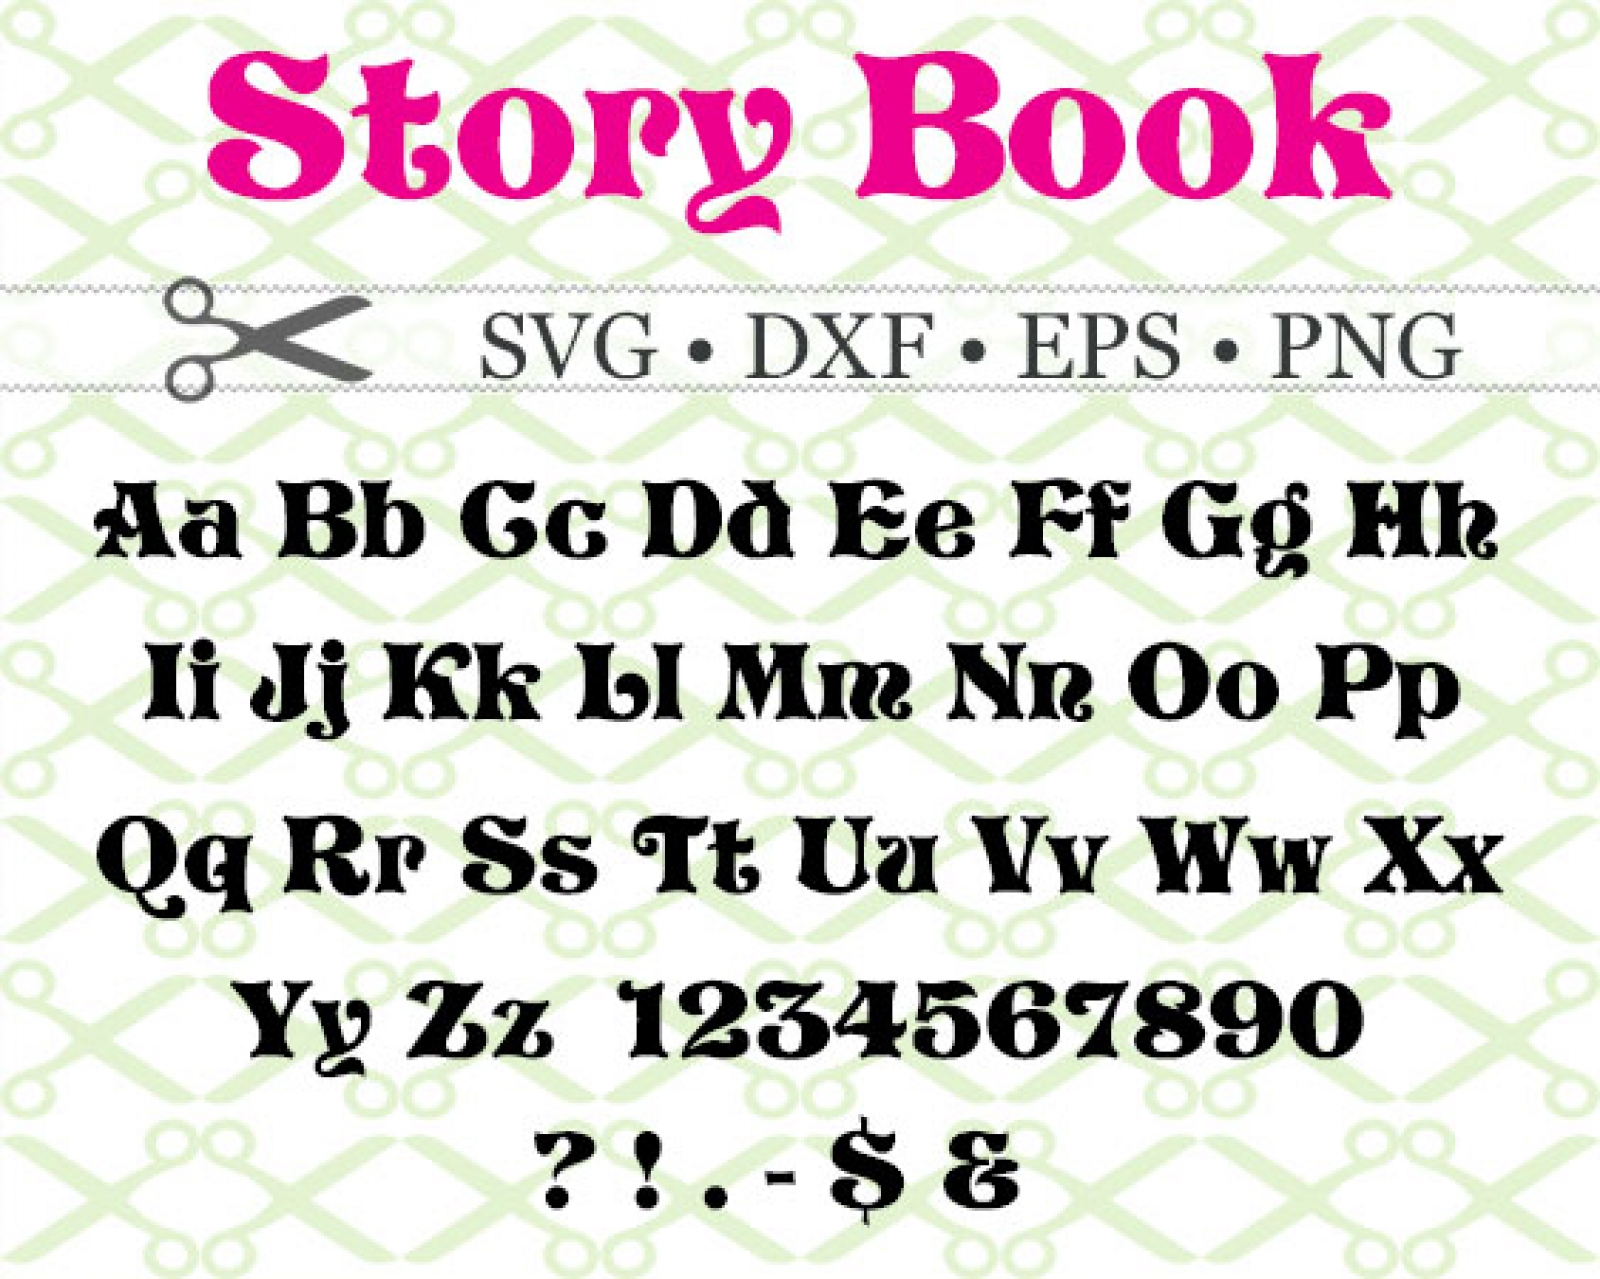 STORYBOOK SVG FONT-Cricut & Silhouette Files SVG DXF EPS